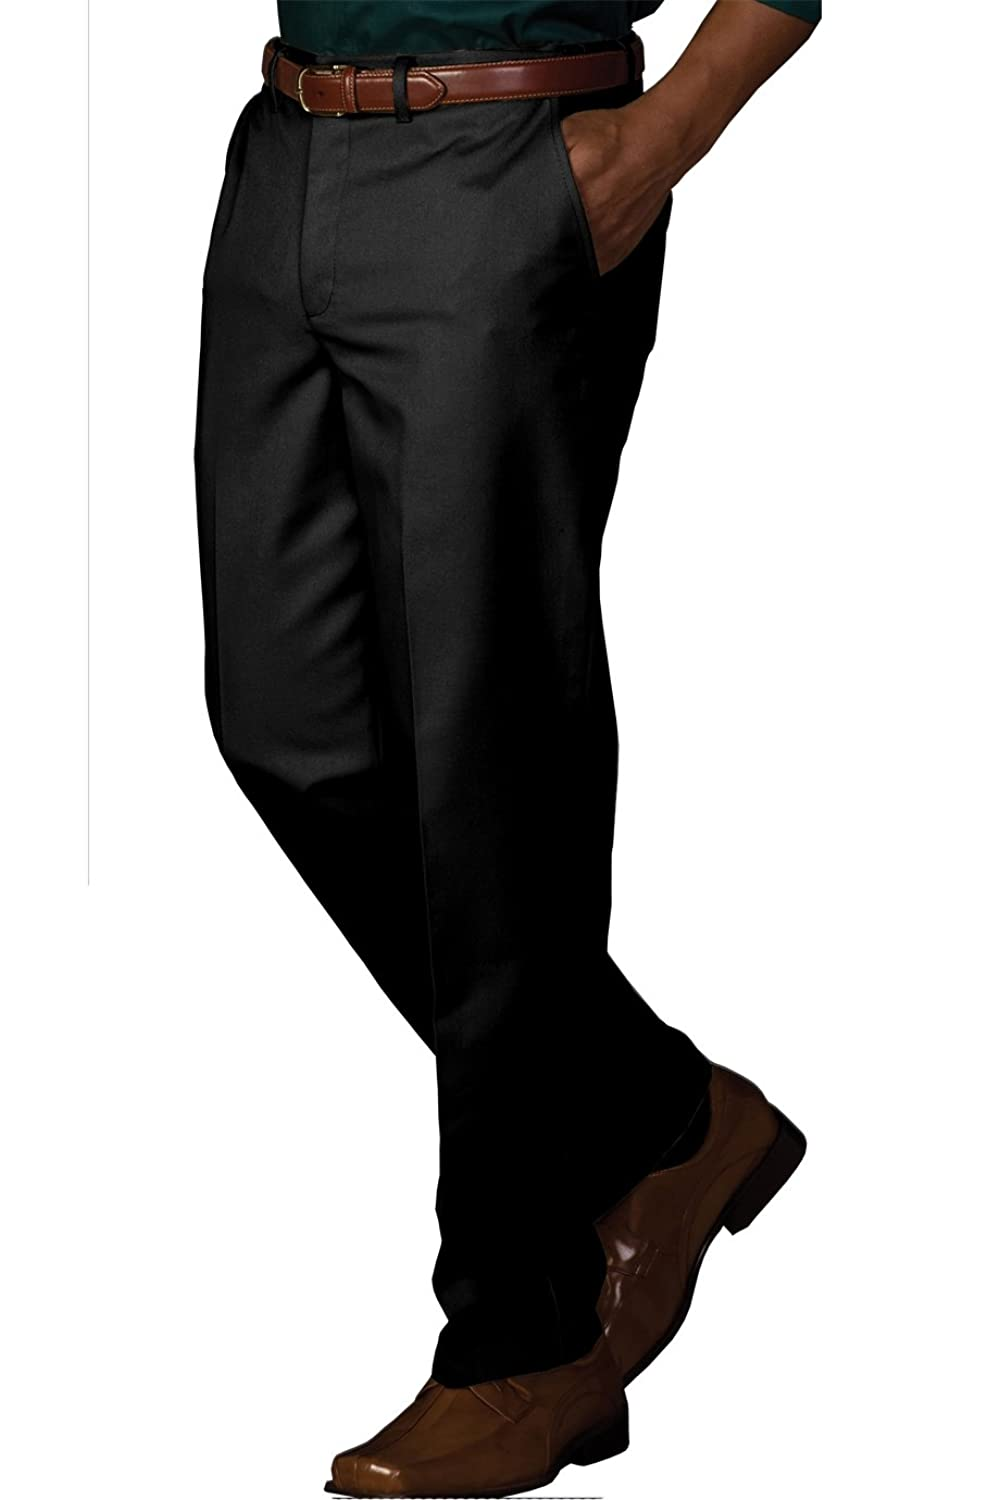 Edwards Garment Men's Casual Chino Blend Easy Fit Pant